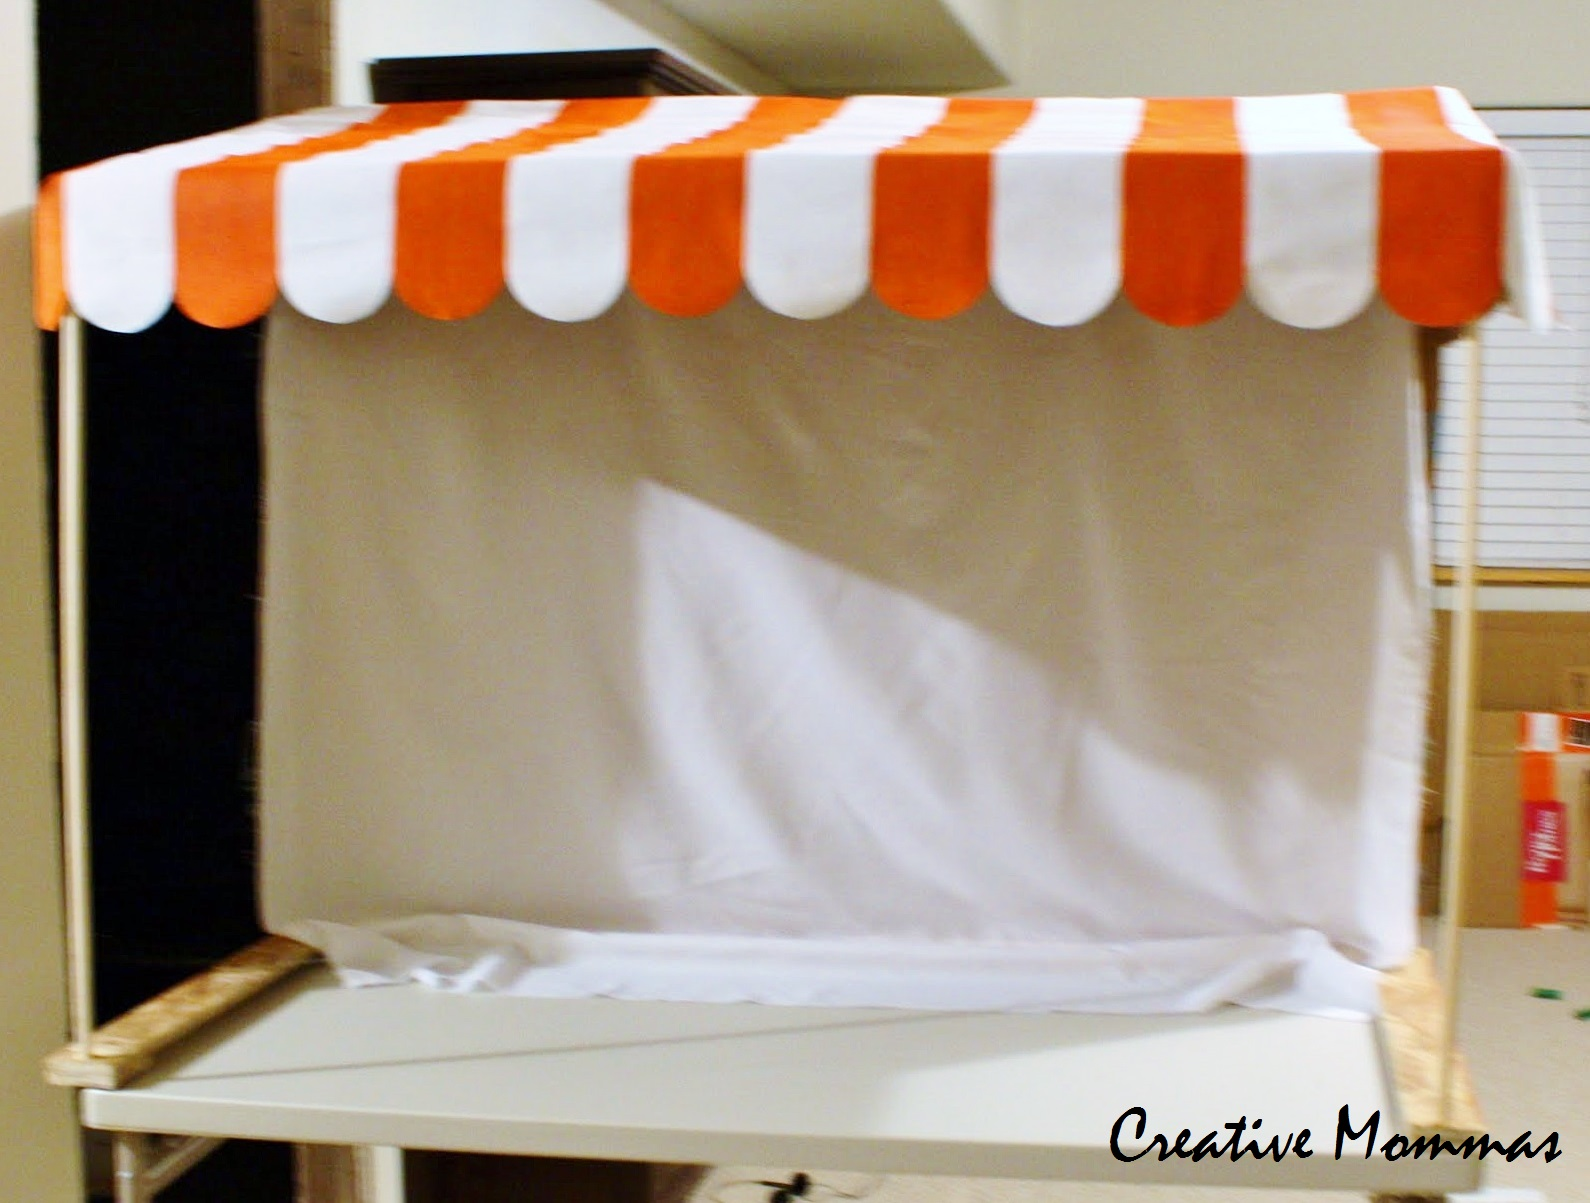 Creative Mommas How To Make An Awning For A Party Dessert